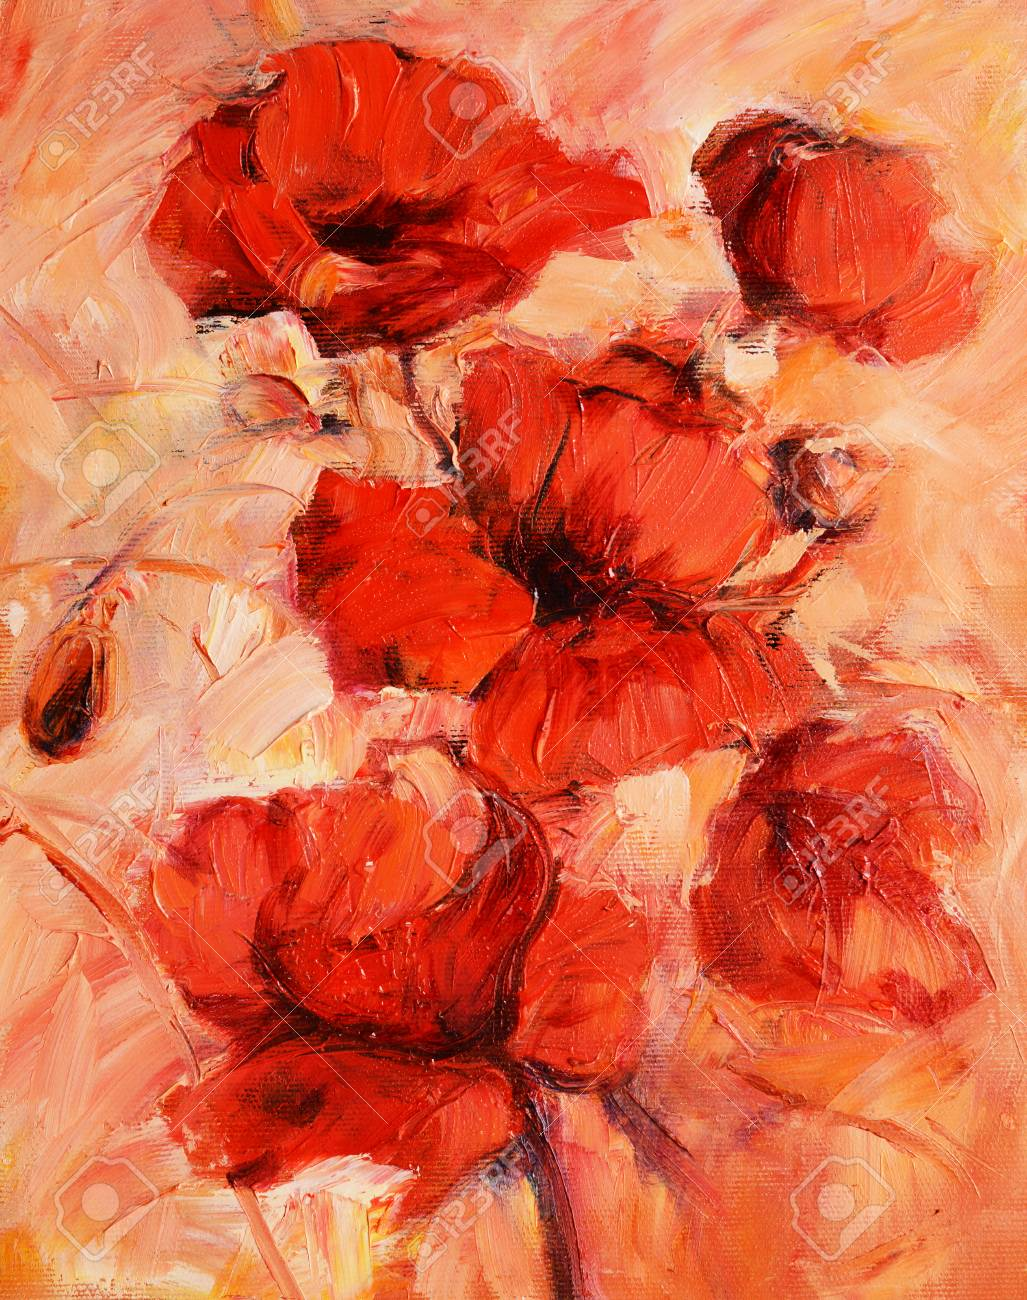 Poppy flowers handmade oil painting on canvas stock photo picture poppy flowers handmade oil painting on canvas stock photo 92152440 mightylinksfo